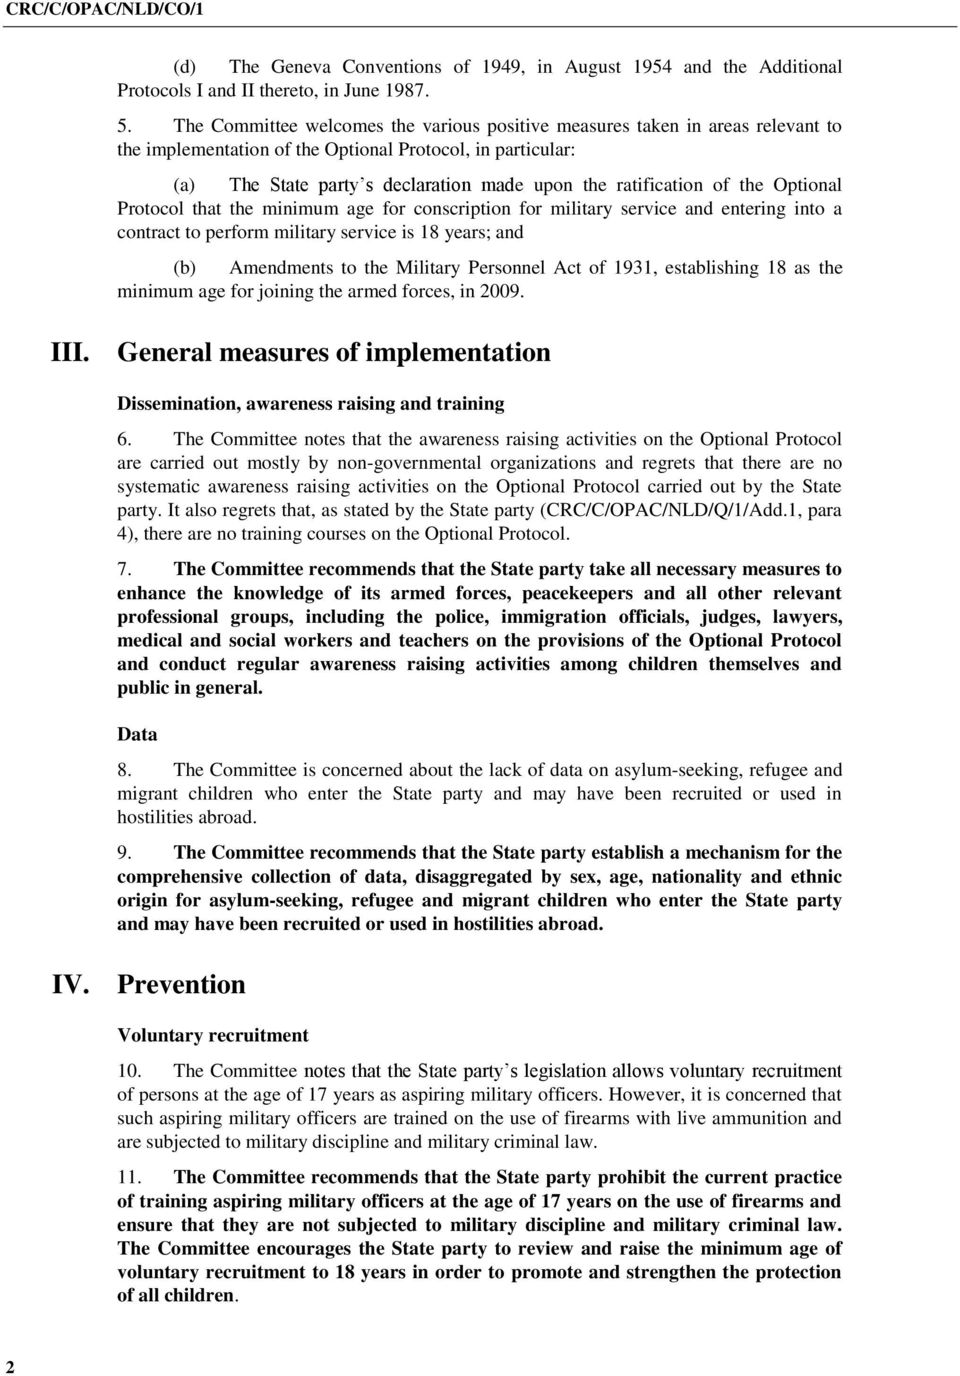 ratification of the Optional Protocol that the minimum age for conscription for military service and entering into a contract to perform military service is 18 years; and (b) Amendments to the